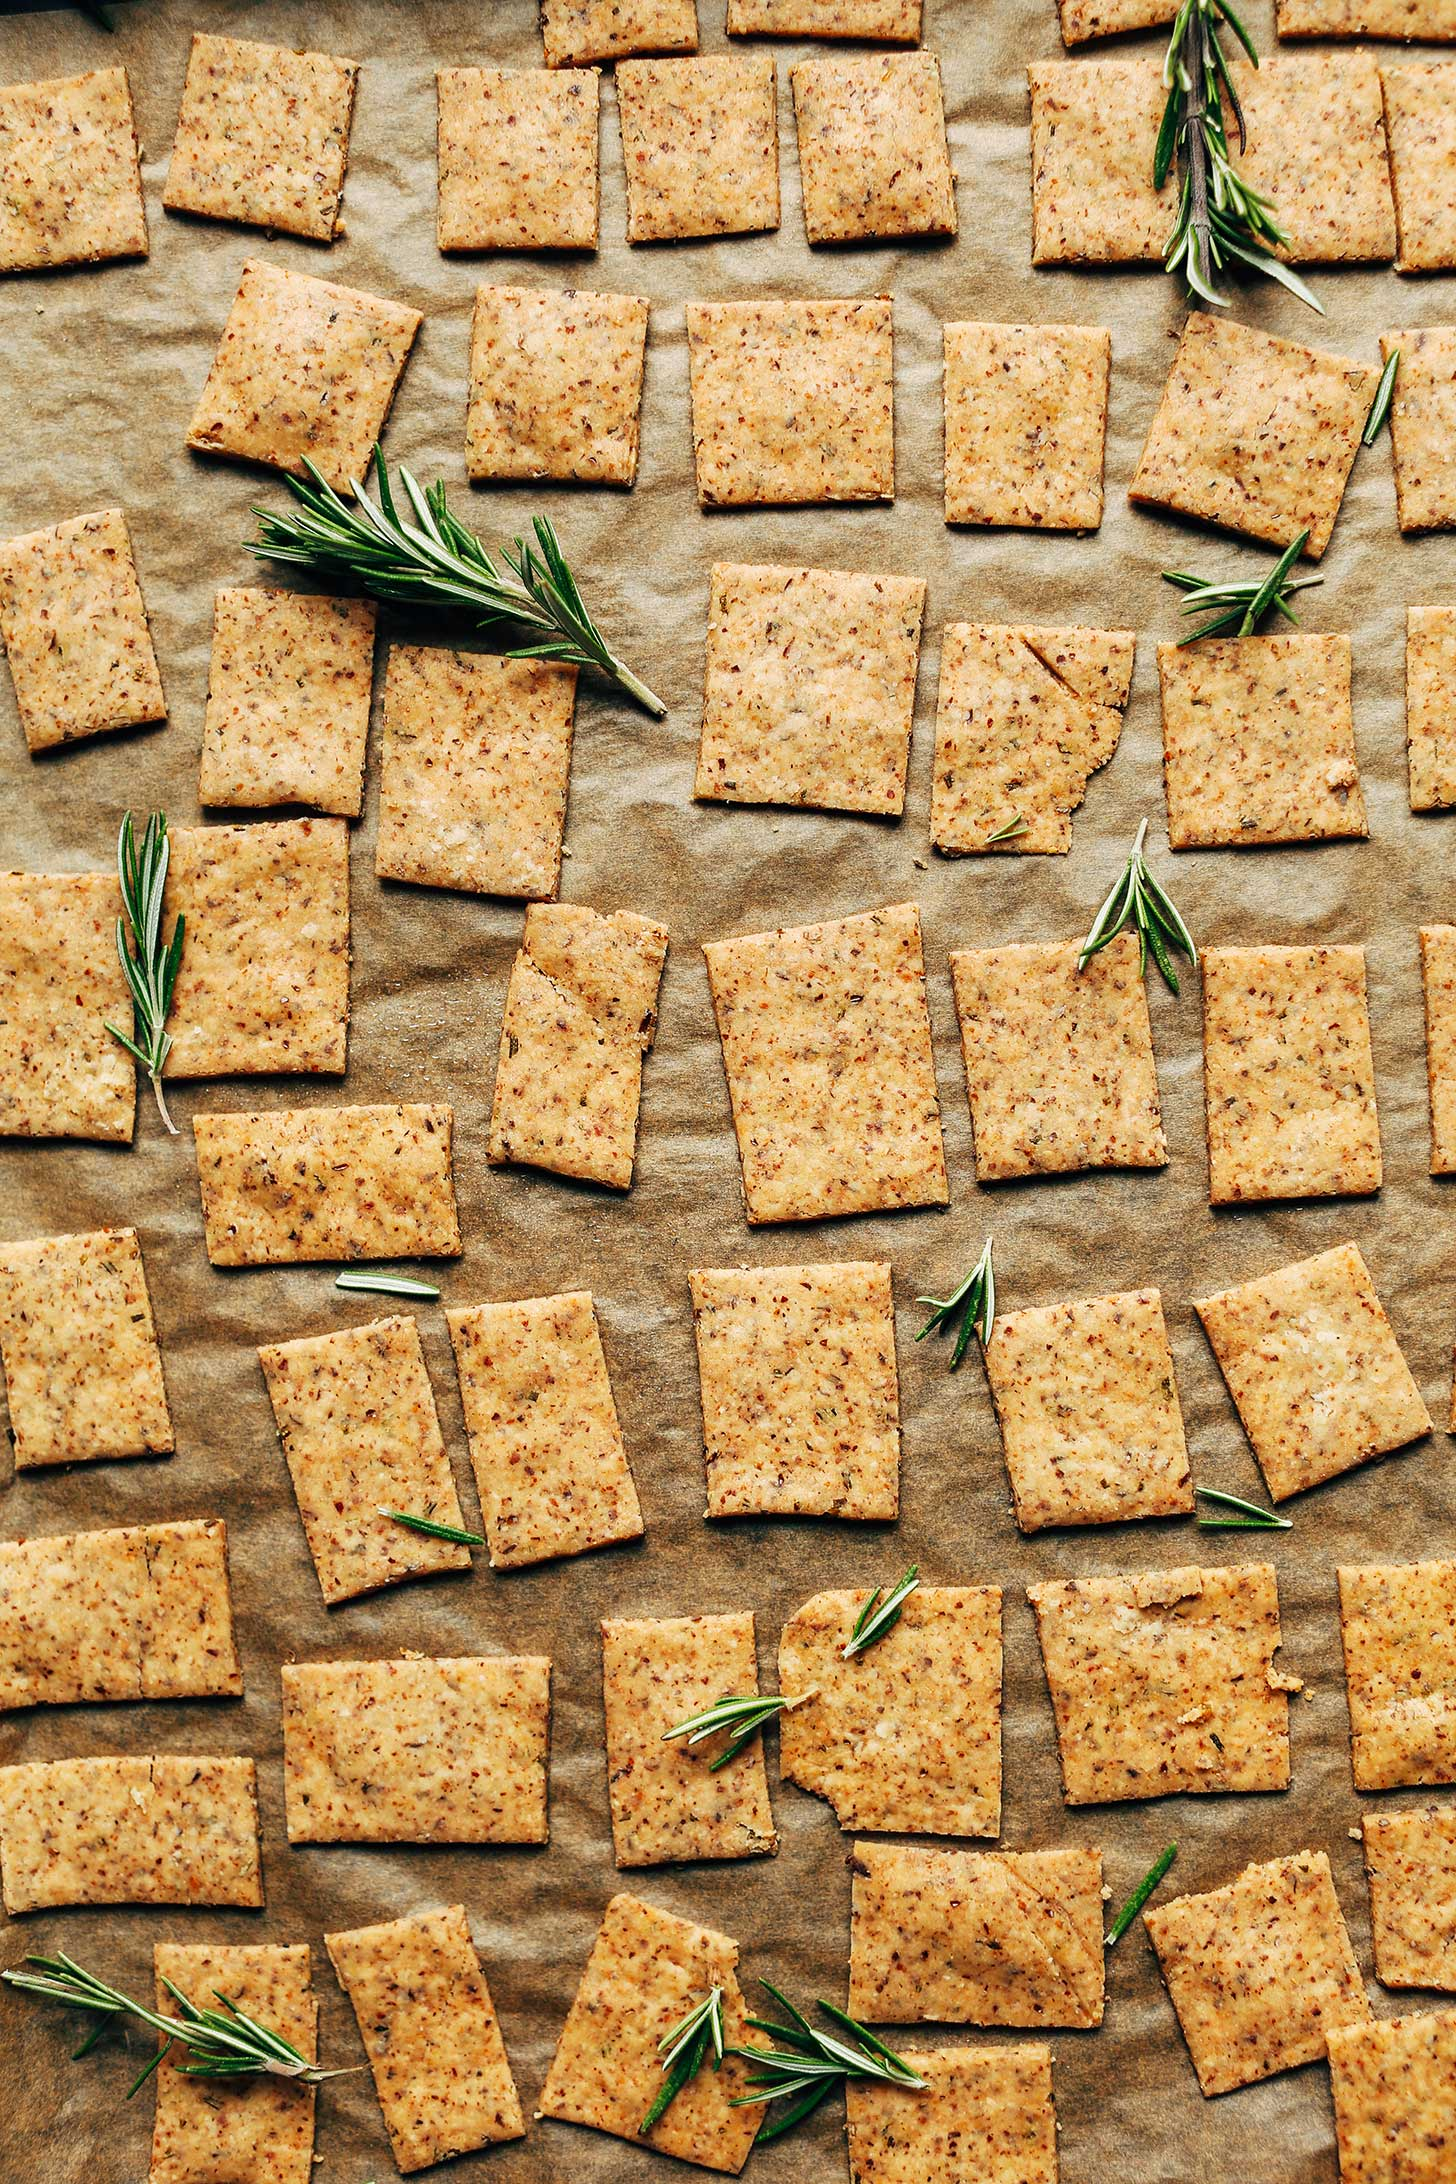 Parchment-lined baking sheet with freshly baked crispy Vegan Gluten-Free Crackers